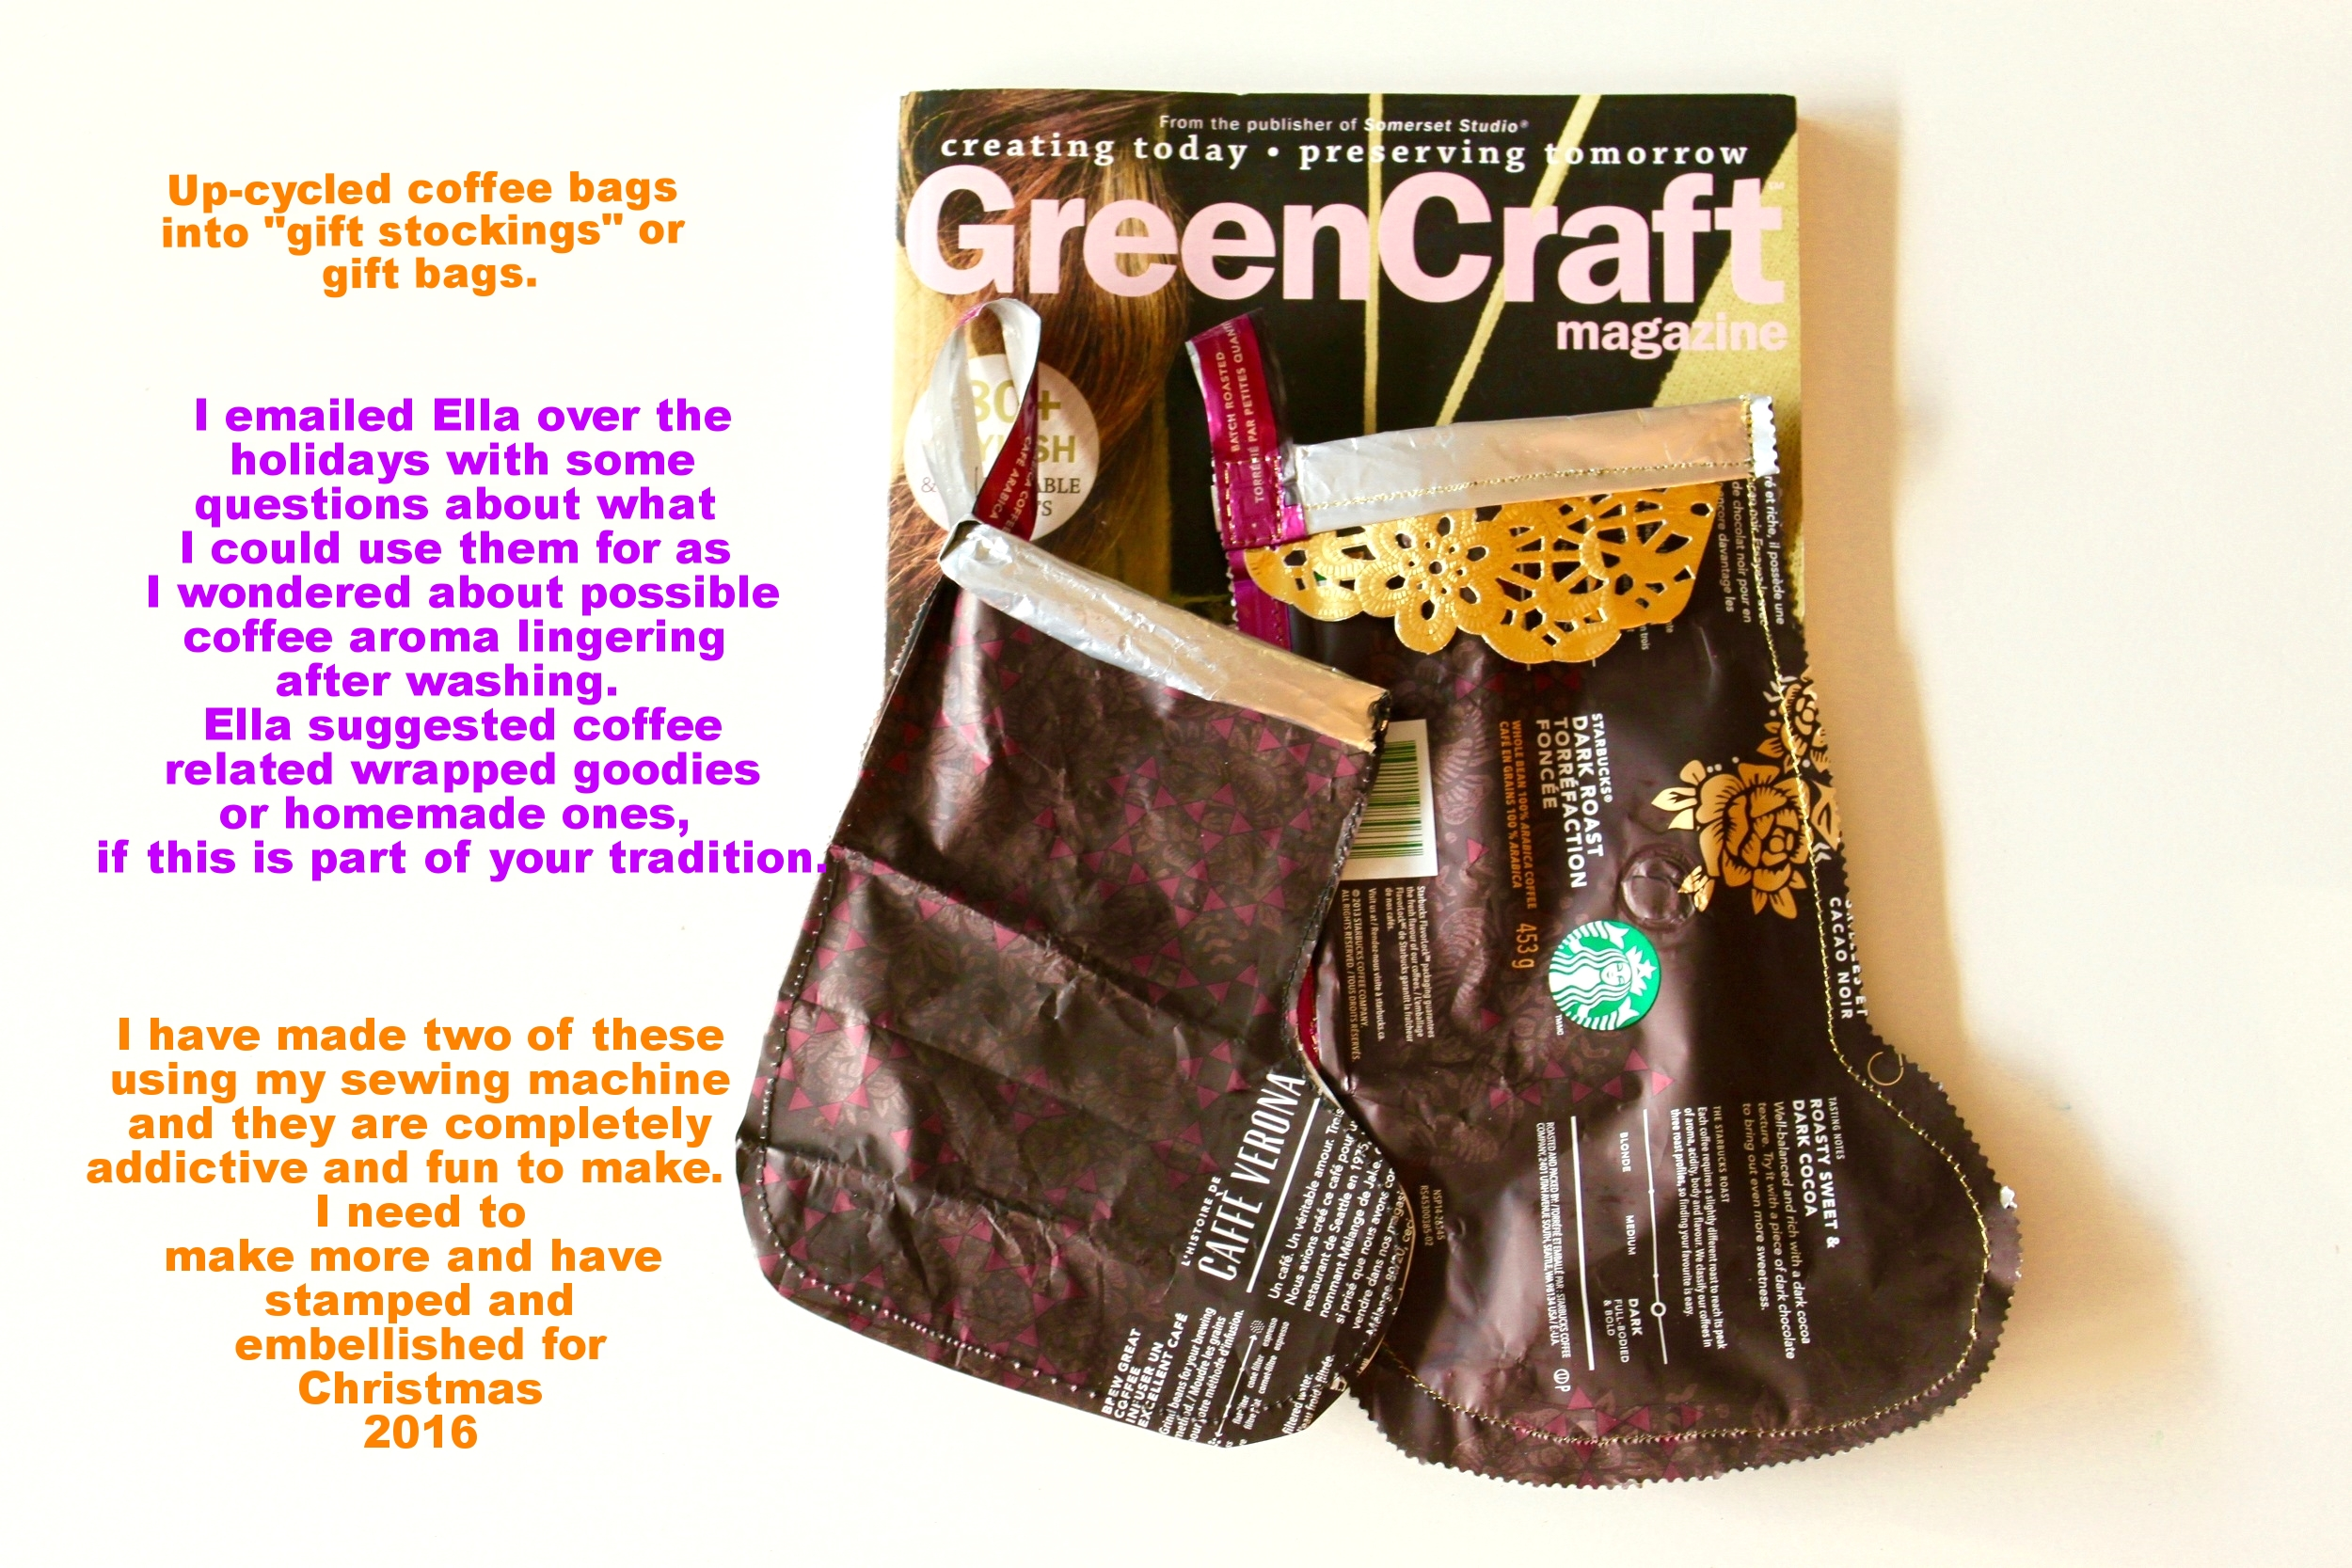 Coffee Bags Up-cycled into gift bags for Christmas goodies